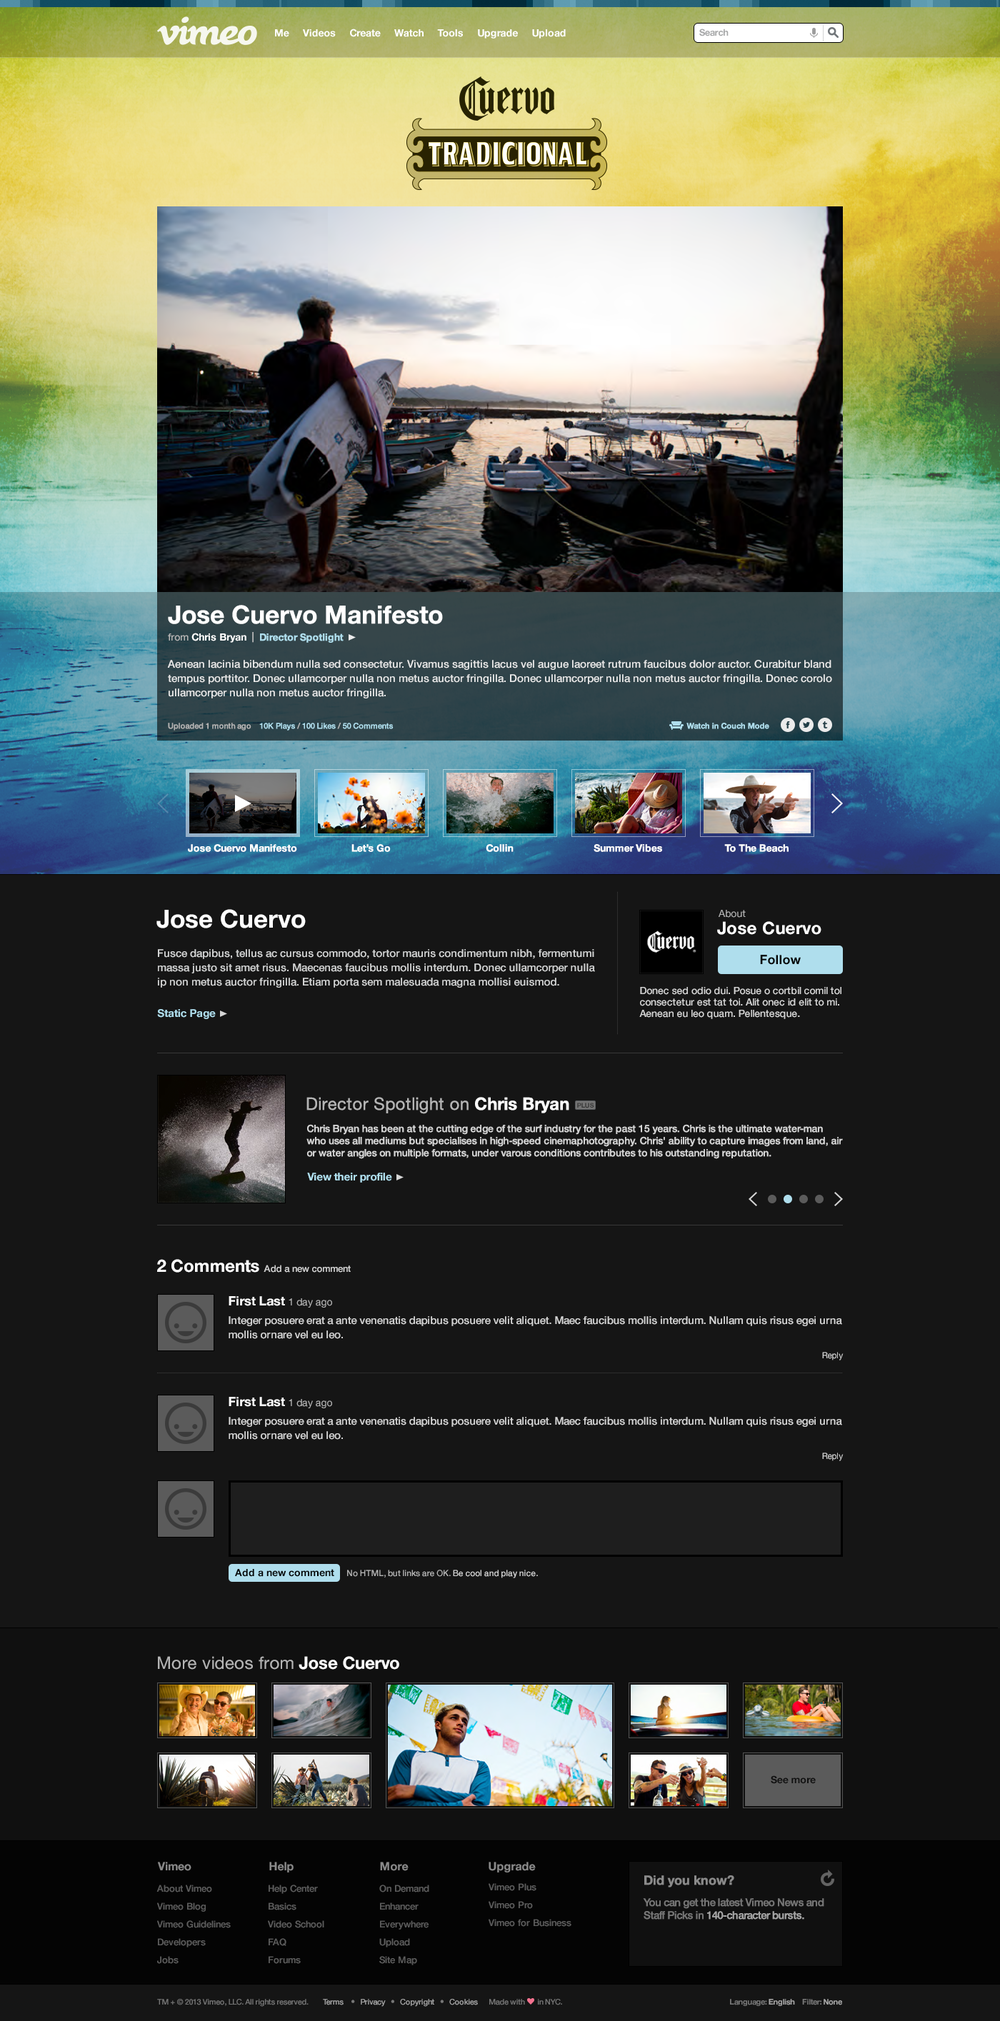 vimeo-campaign-pages-cuervo.png